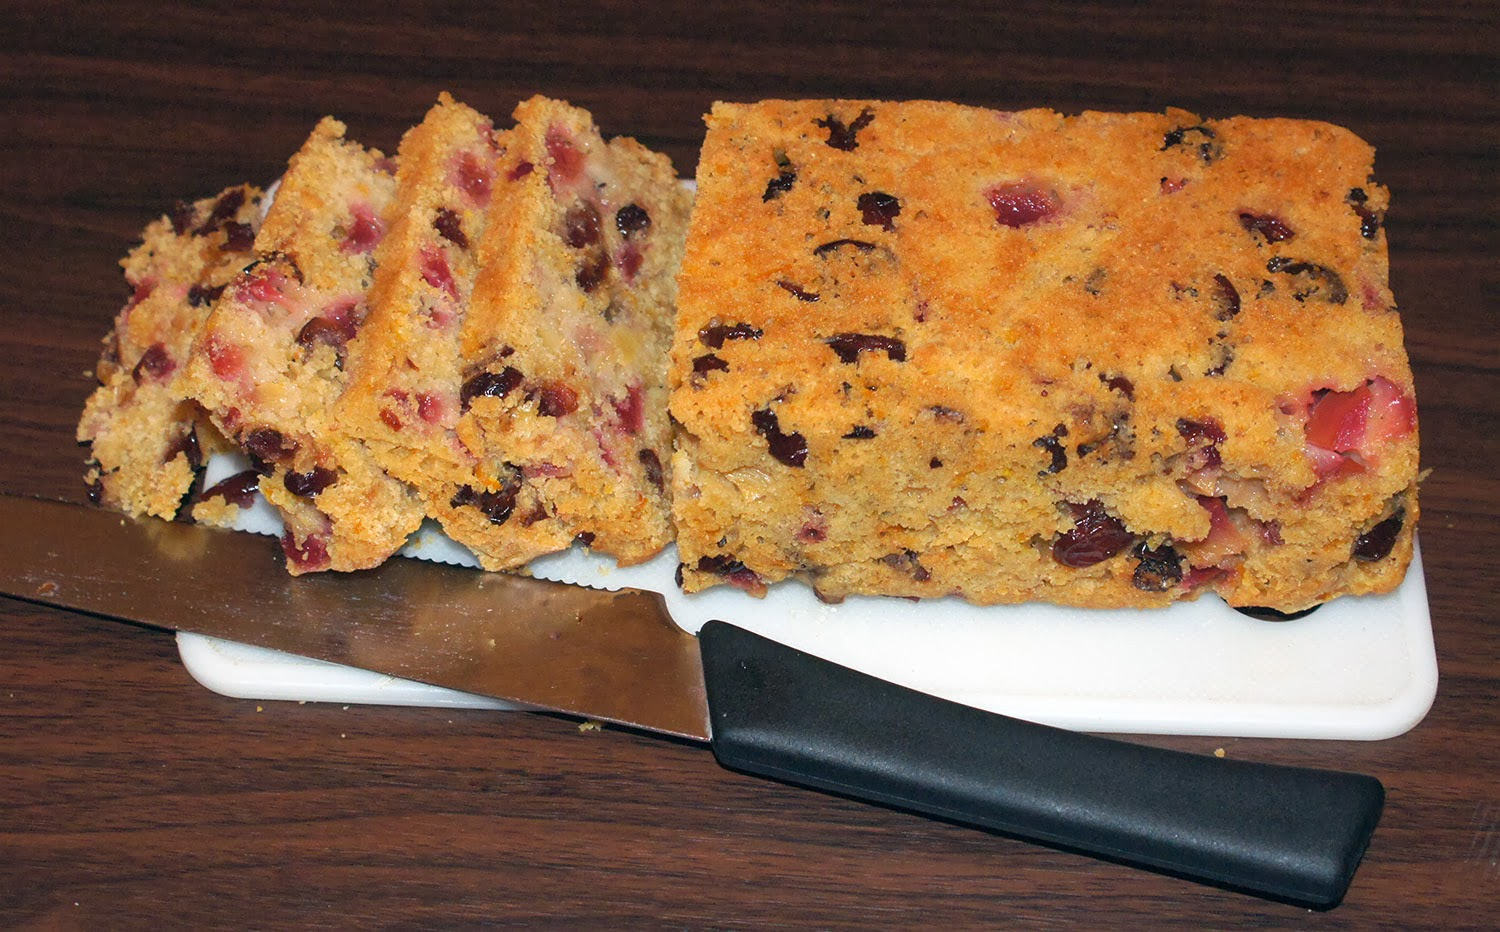 Christmas Fruited Quickbread: A fruited Christmas cake, based on a muffin recipe that can be prepared either as a cake or as a pudding. An excellent choice if you want a lighter Christmas cake or pudding